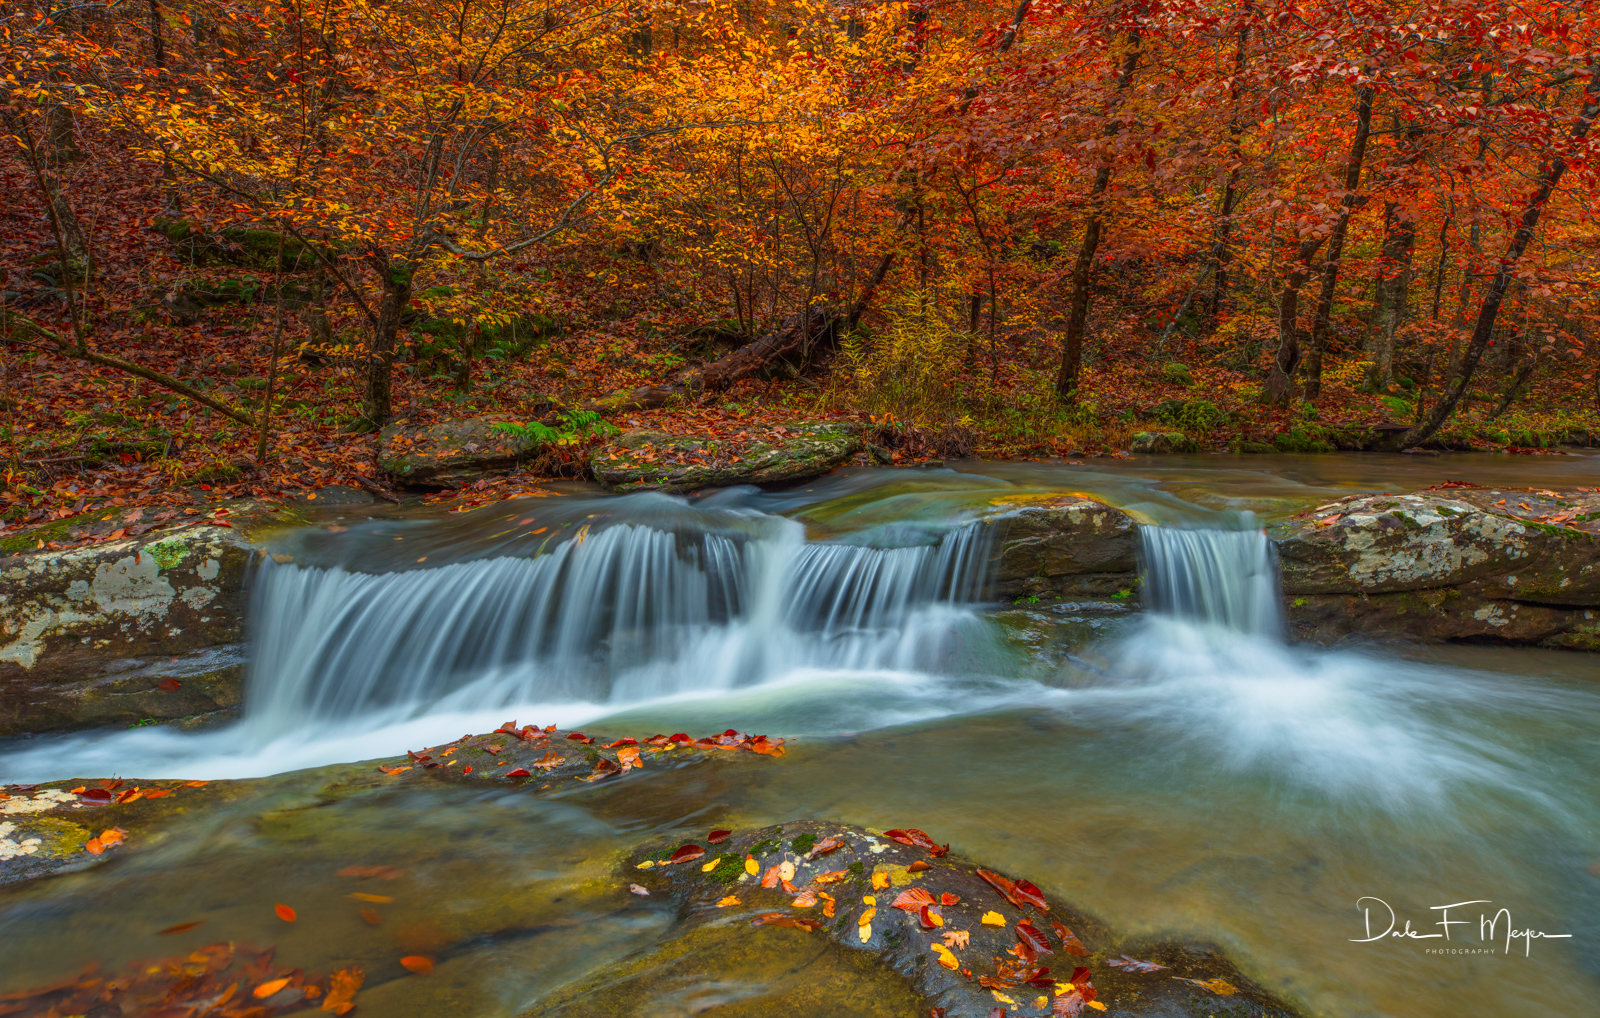 A rare and fleeting combination of beautiful Fall color and water flow on Whitaker Creek near Comptons Falls in the Upper Buffalo...